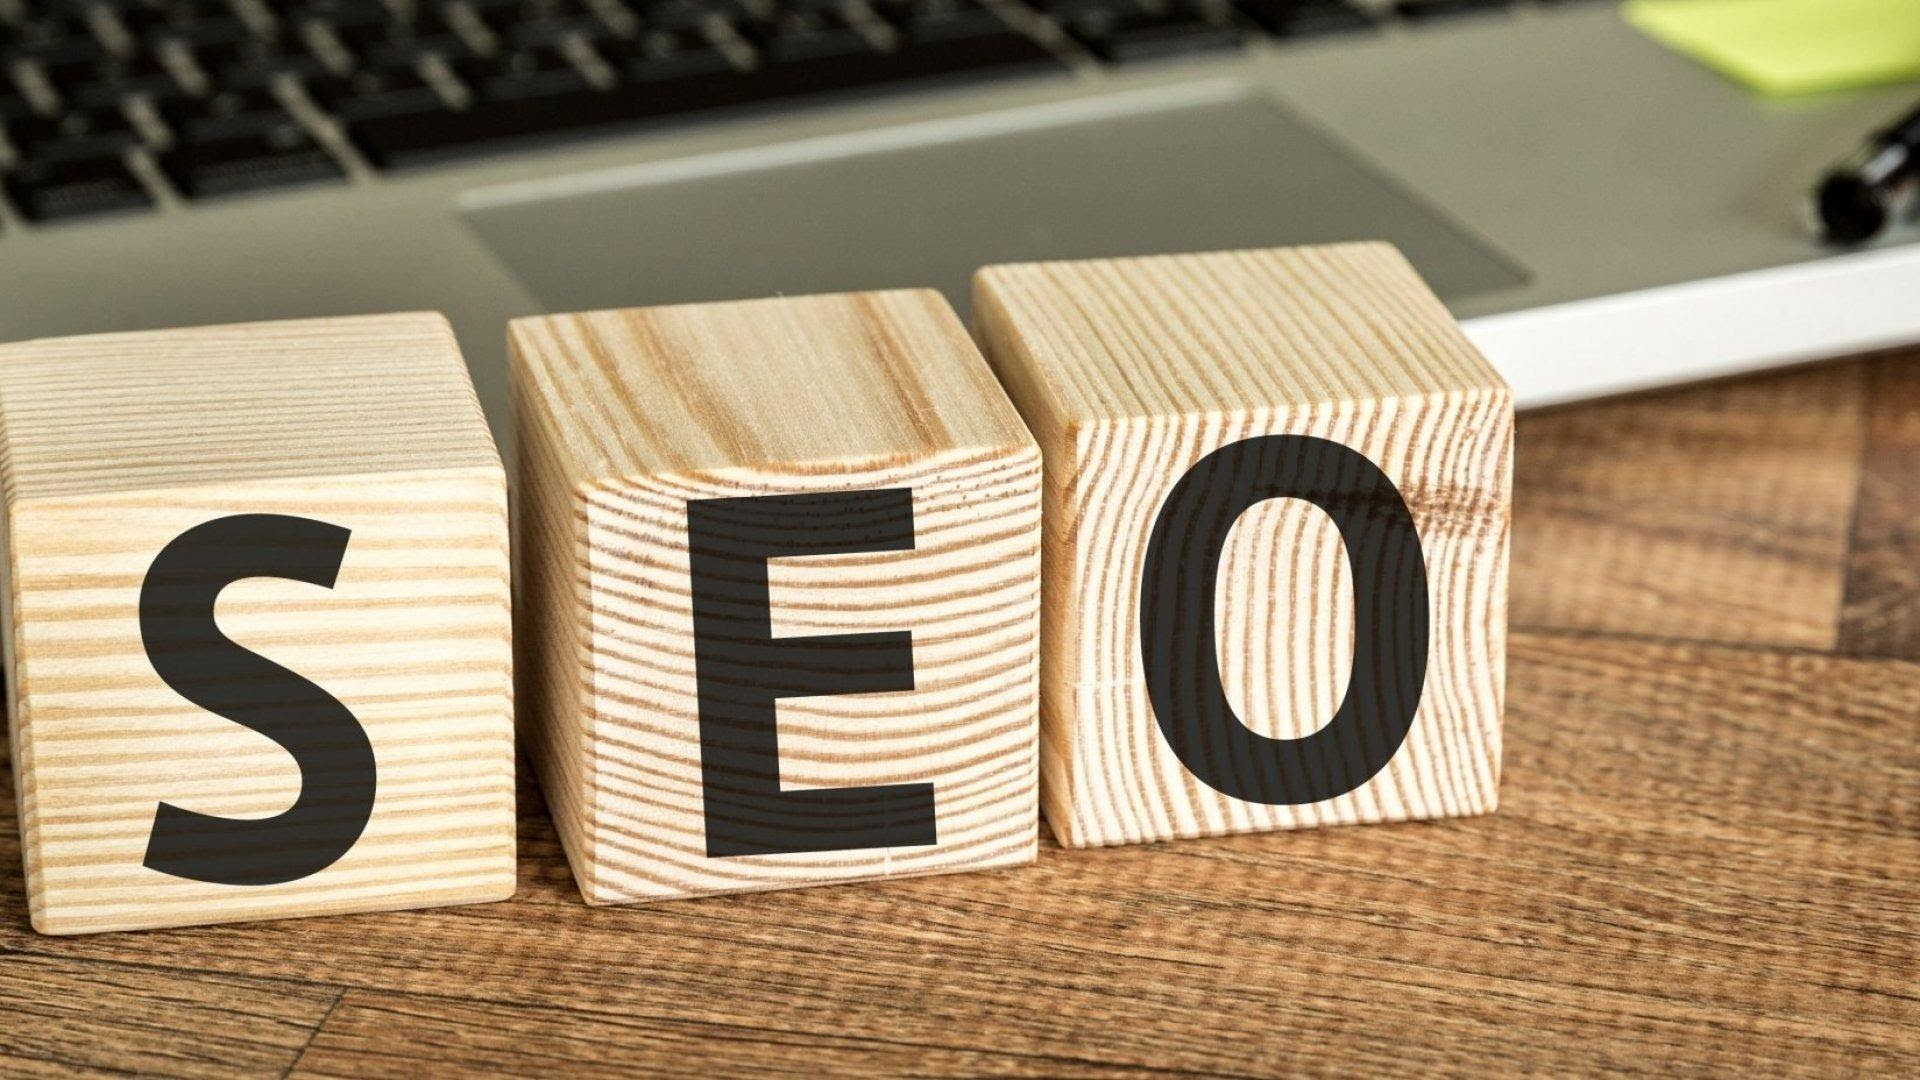 Overcome Your Business Fears In 2021 With SEO